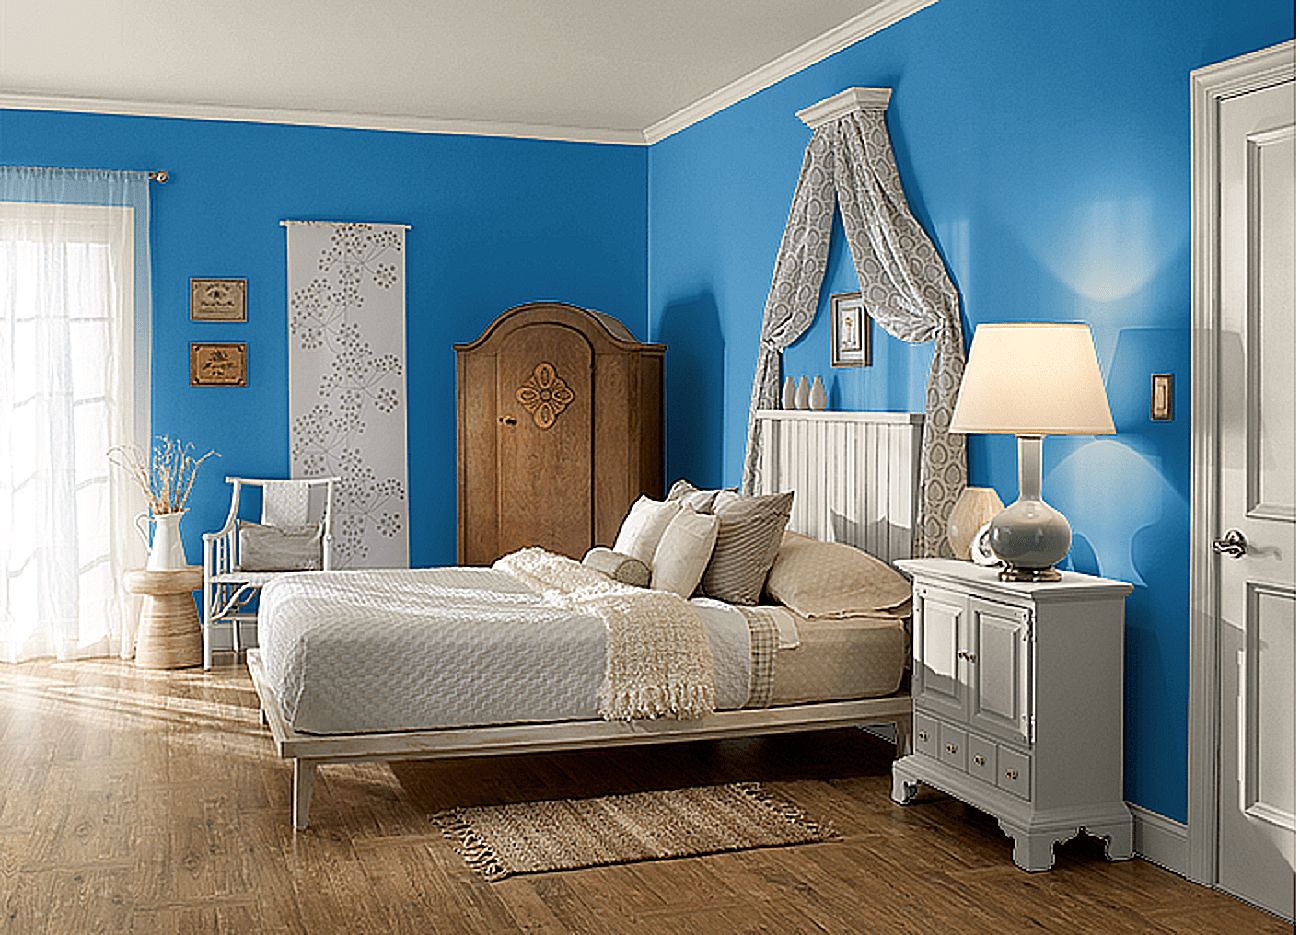 The 10 Best Blue Paint Colors for the Bedroom Colonial Blue Bedroom Decorating on colonial bedroom art, colonial rugs, colonial architecture, colonial bedroom furnishings, colonial bedroom style, colonial bathroom, colonial bedroom sets, colonial general, colonial beds, colonial mirrors, colonial master bedroom, colonial bedroom colors, colonial kitchen, colonial interior,